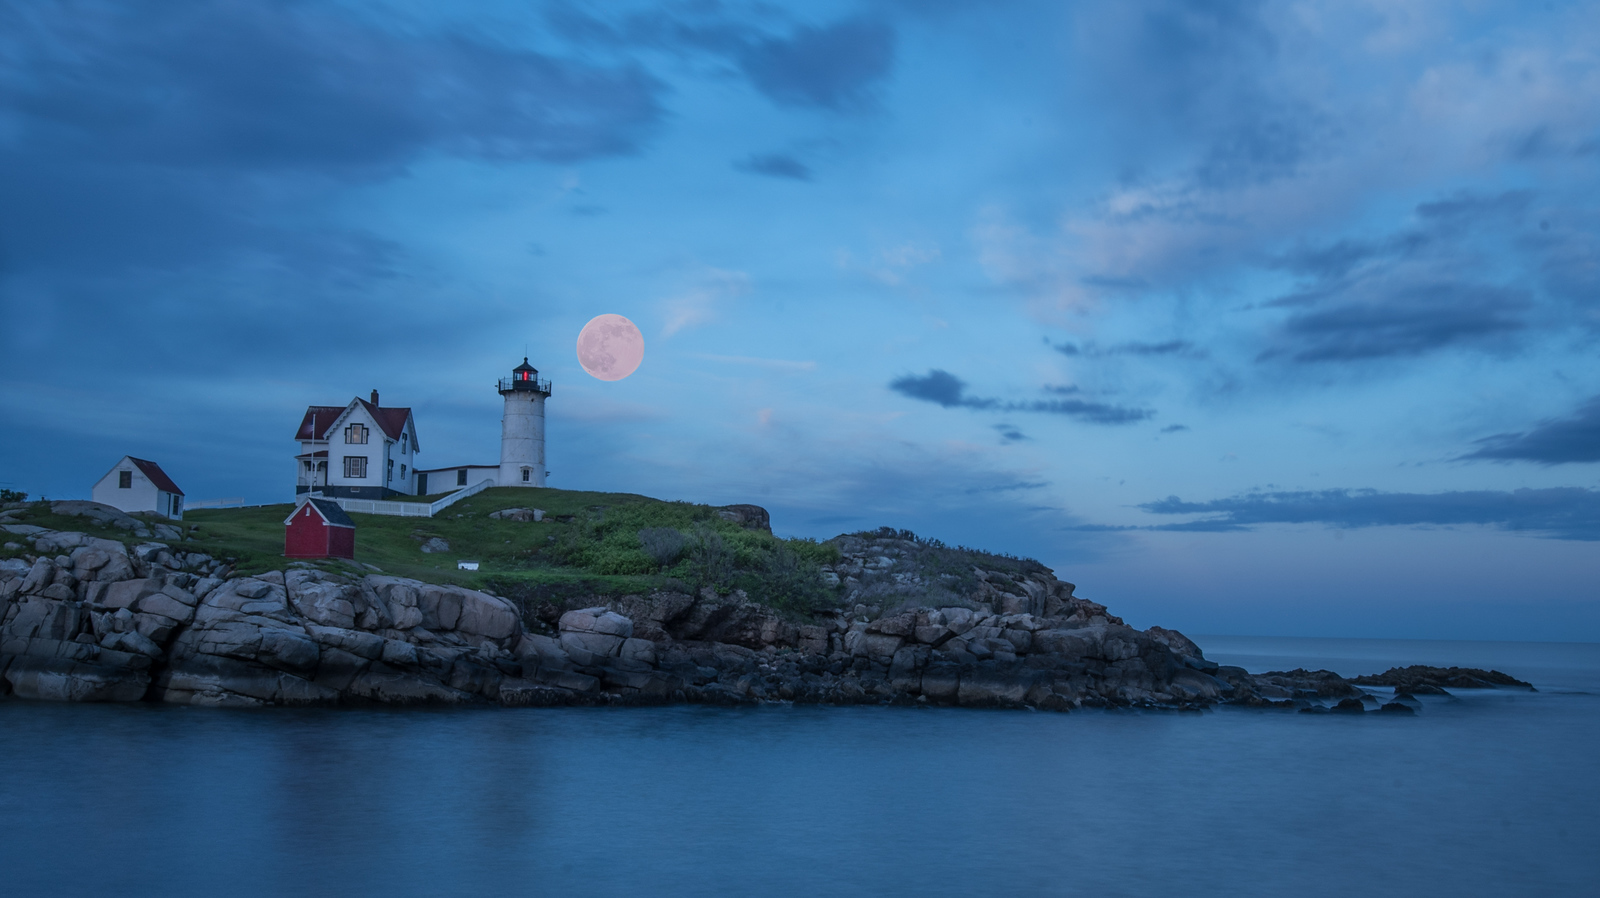 The Strawberry Moon over the Nubble Light